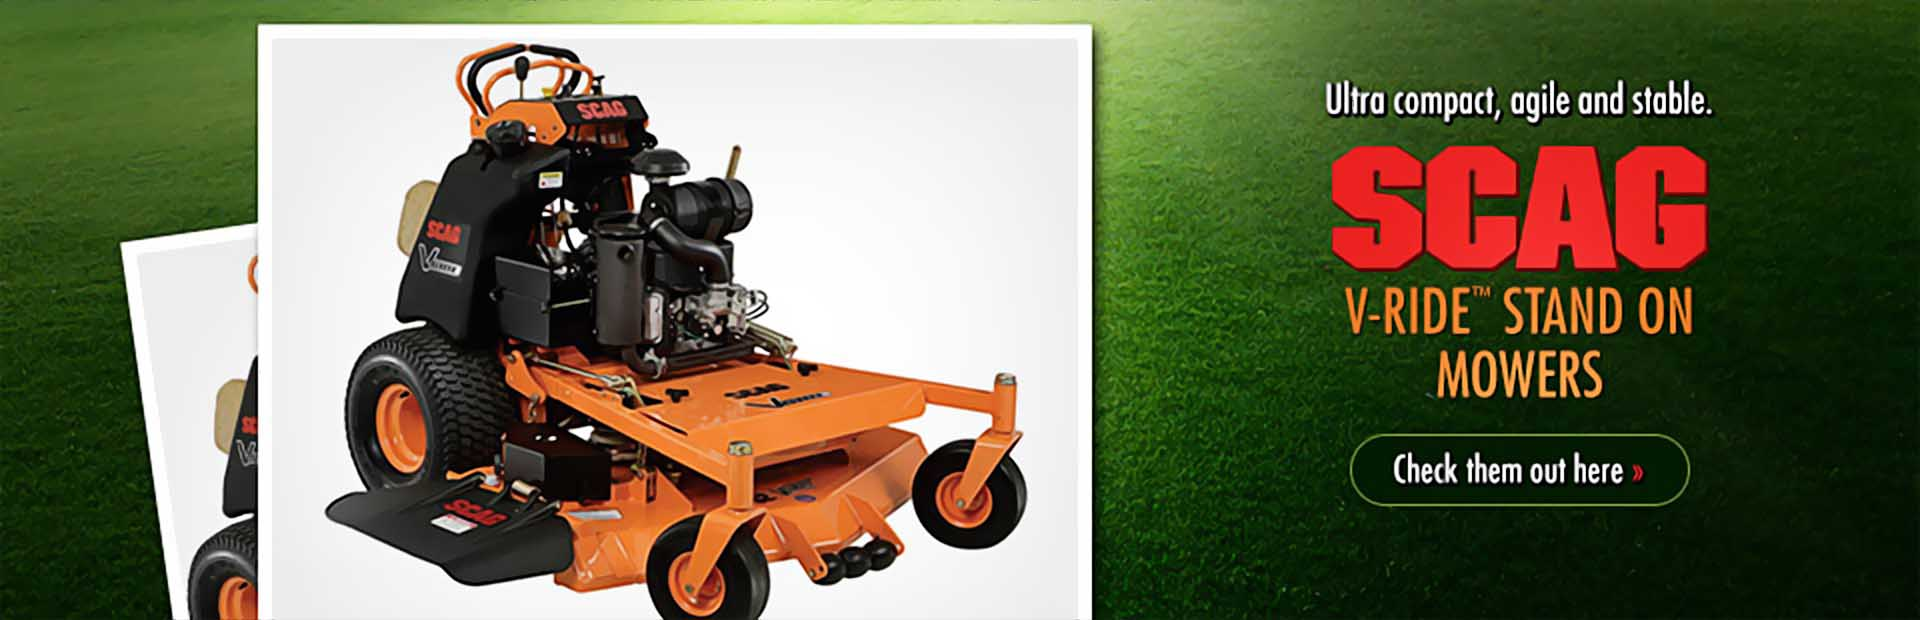 Scag V-Ride™ Stand On Mowers: Click here to check them out!